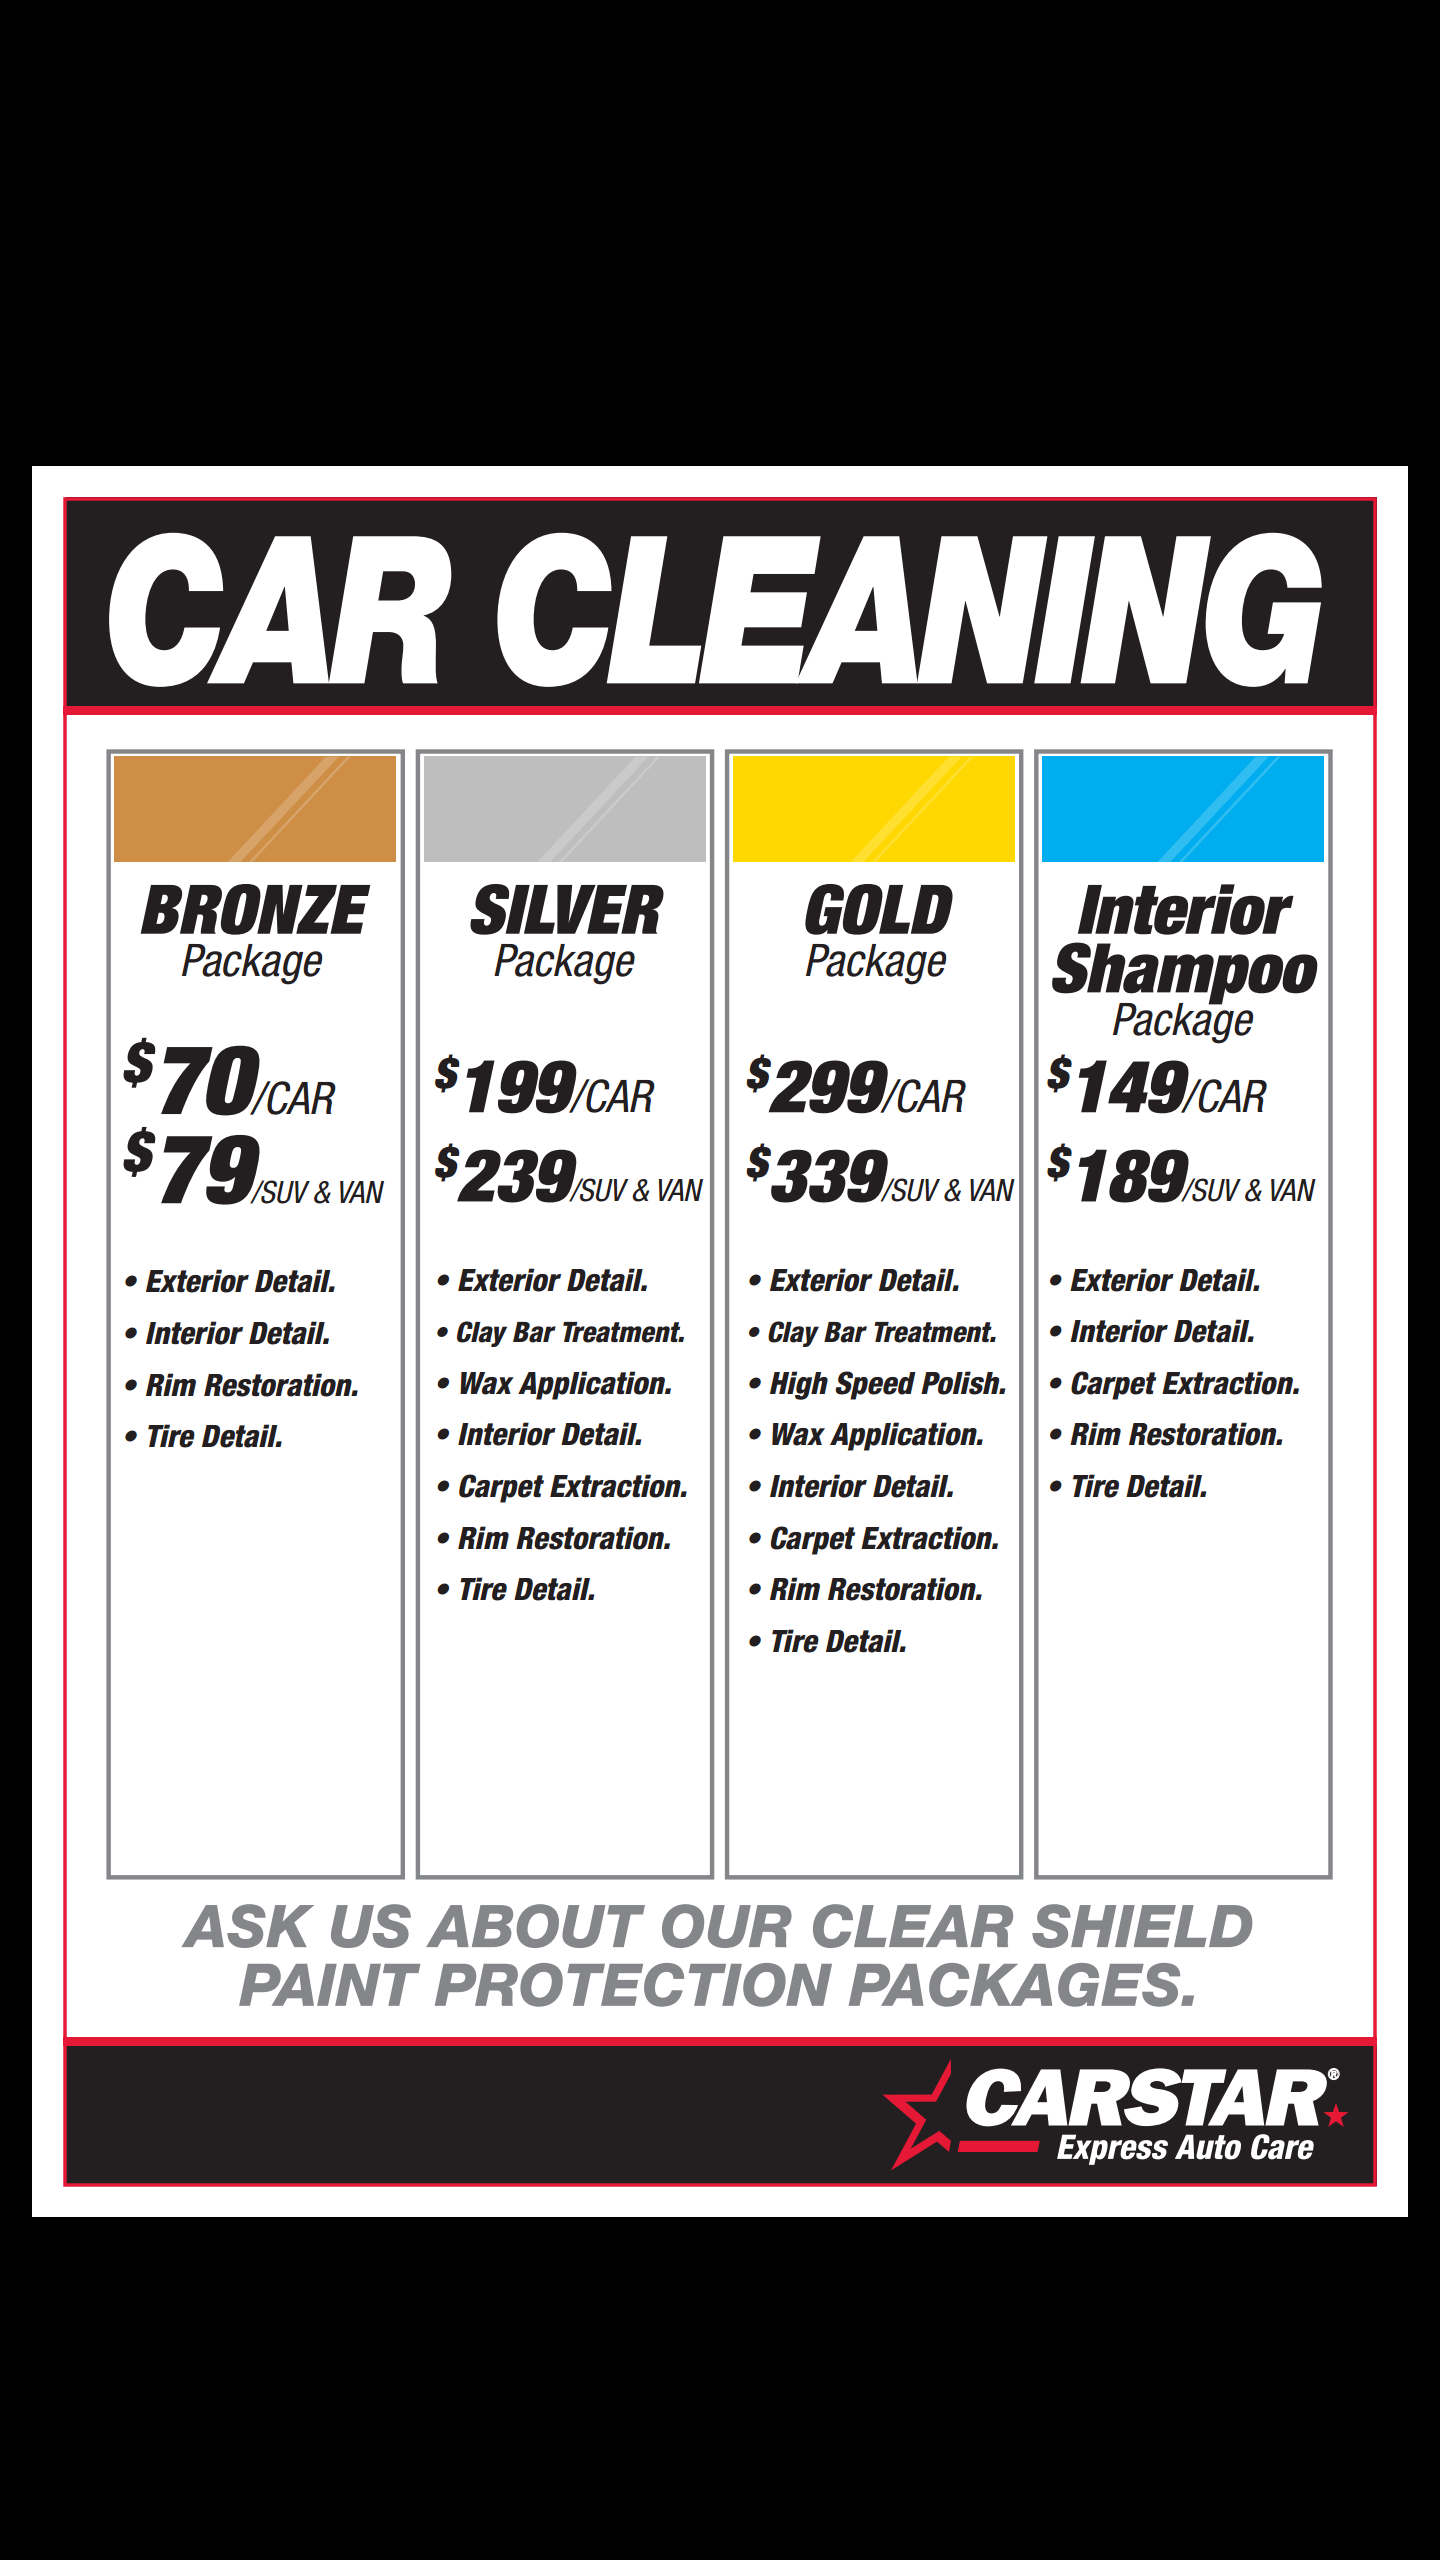 After A Long Winter Here In Ottawa The Cherokee Needs A Good Detailing This Local Detailing Company Has Great Car Detailing Car Wash Prices Car Wash Business